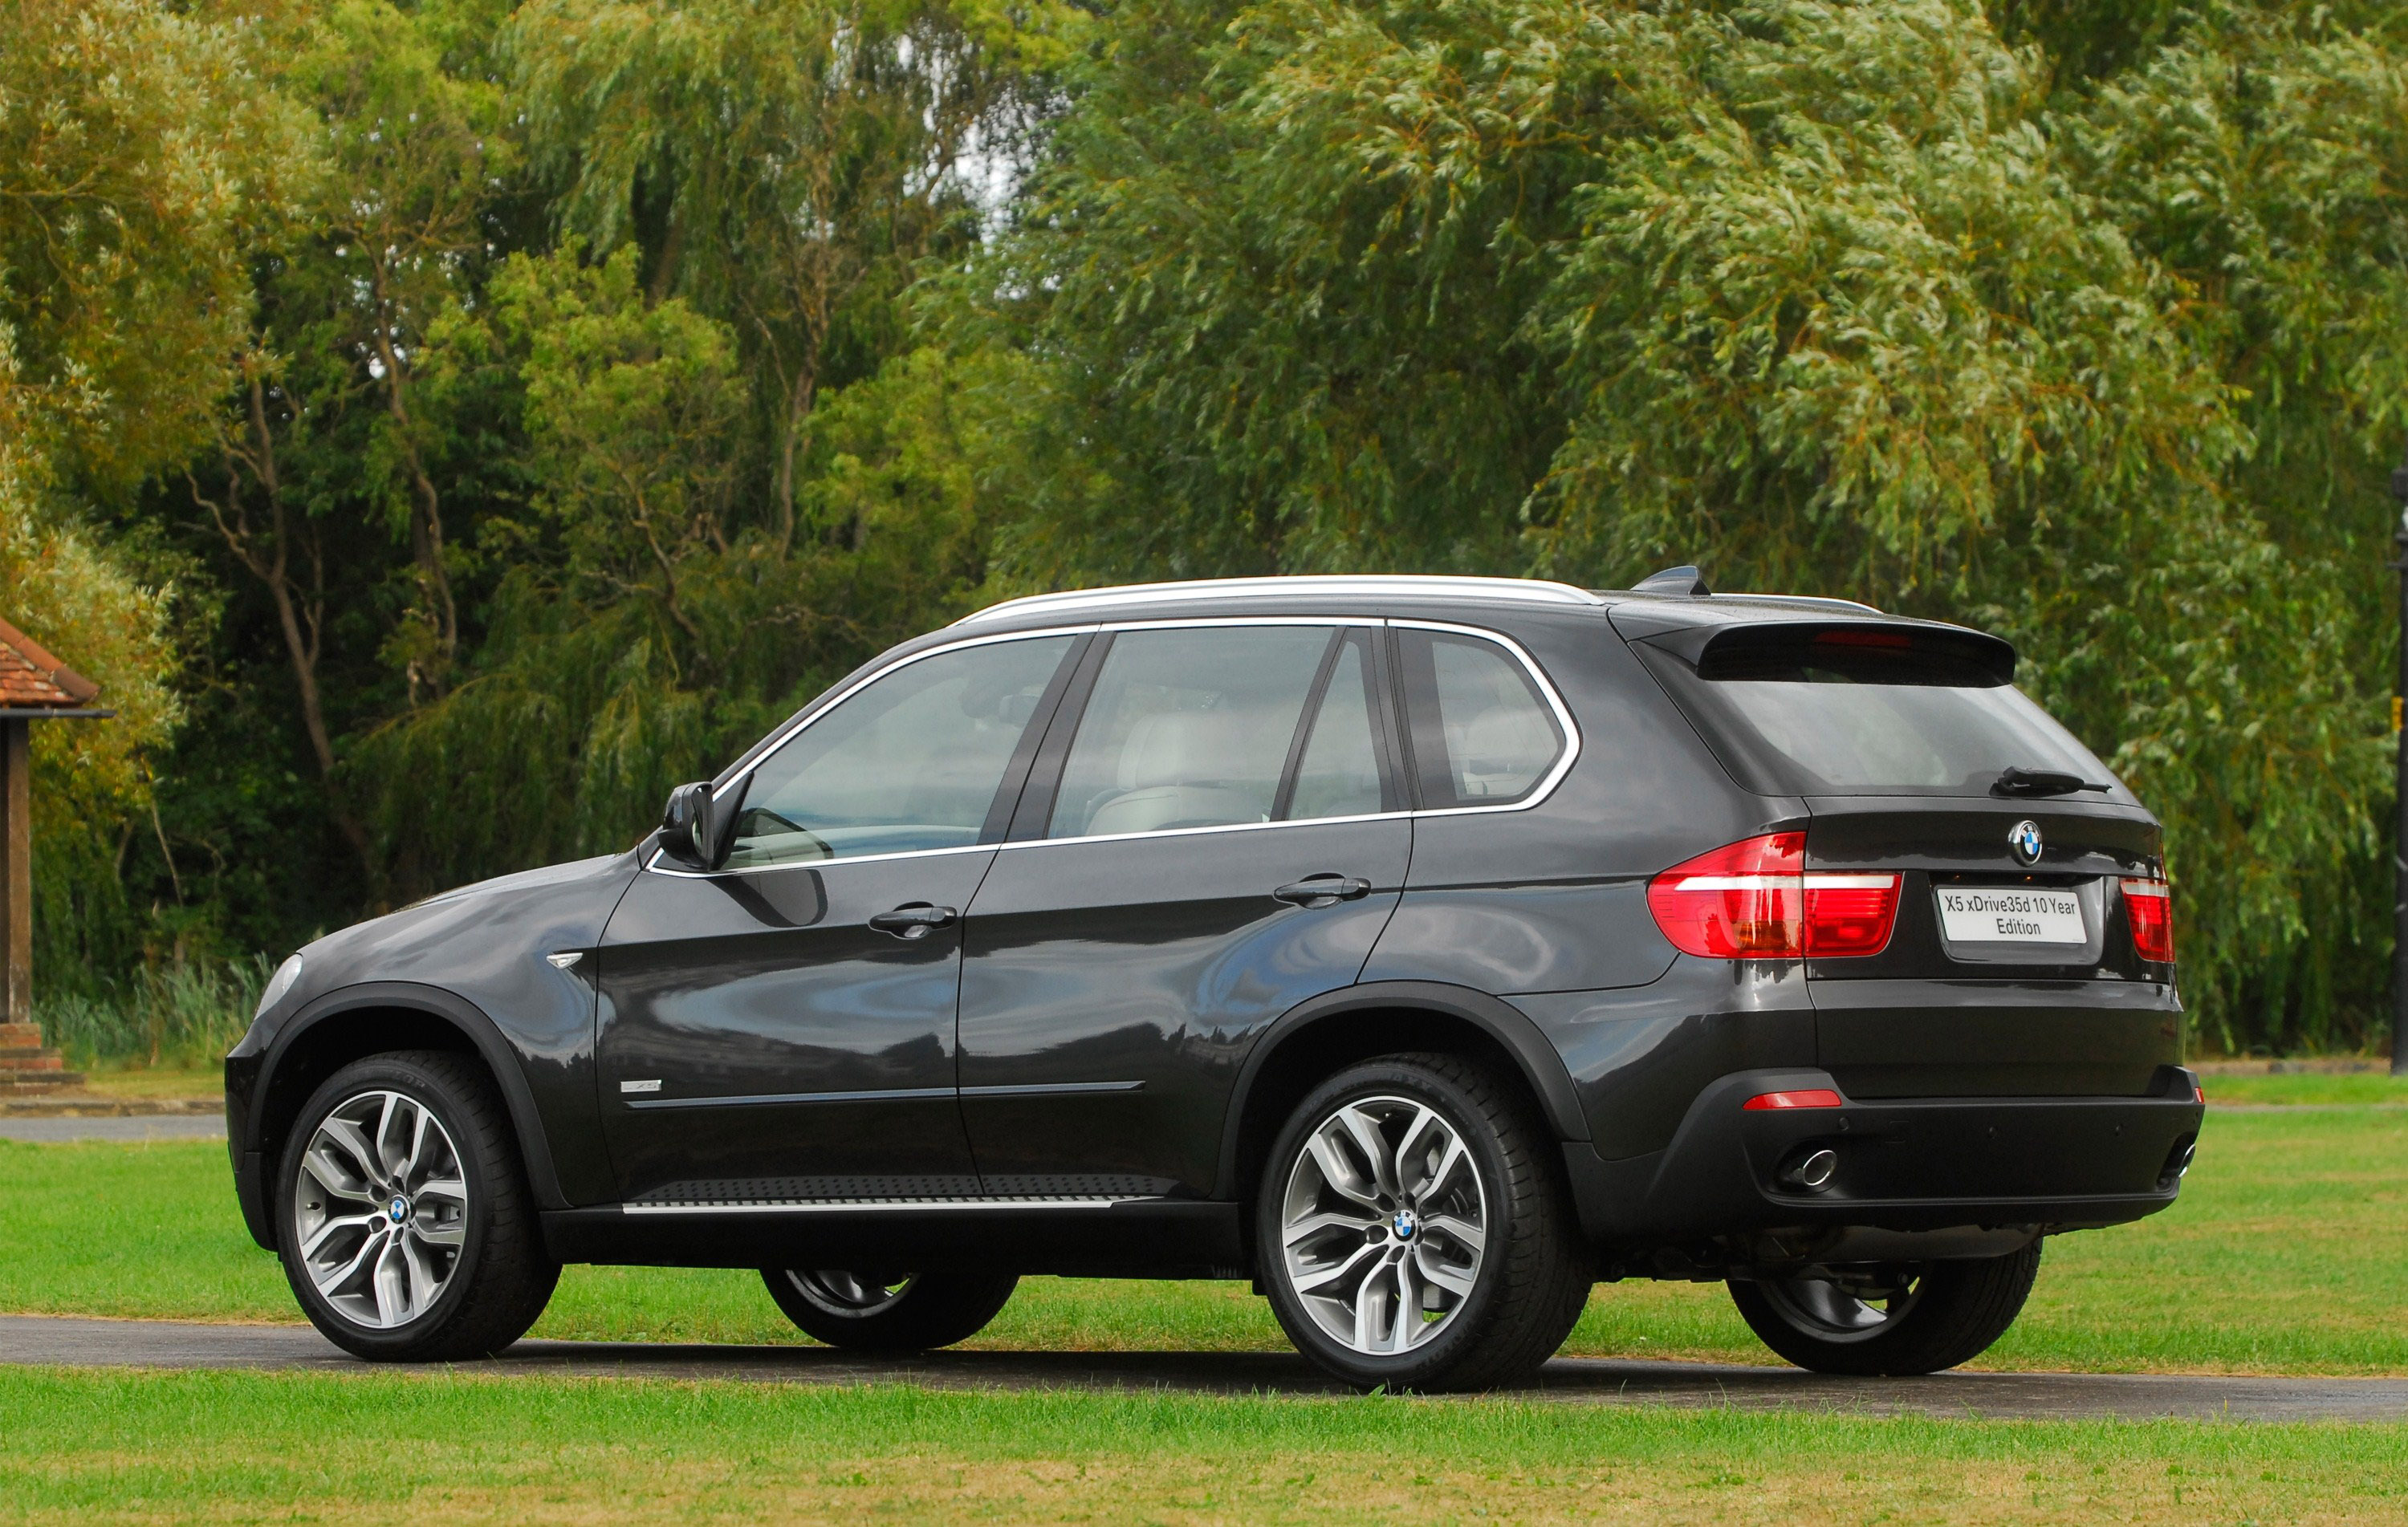 Full Bmw Collection's: BMW X Series